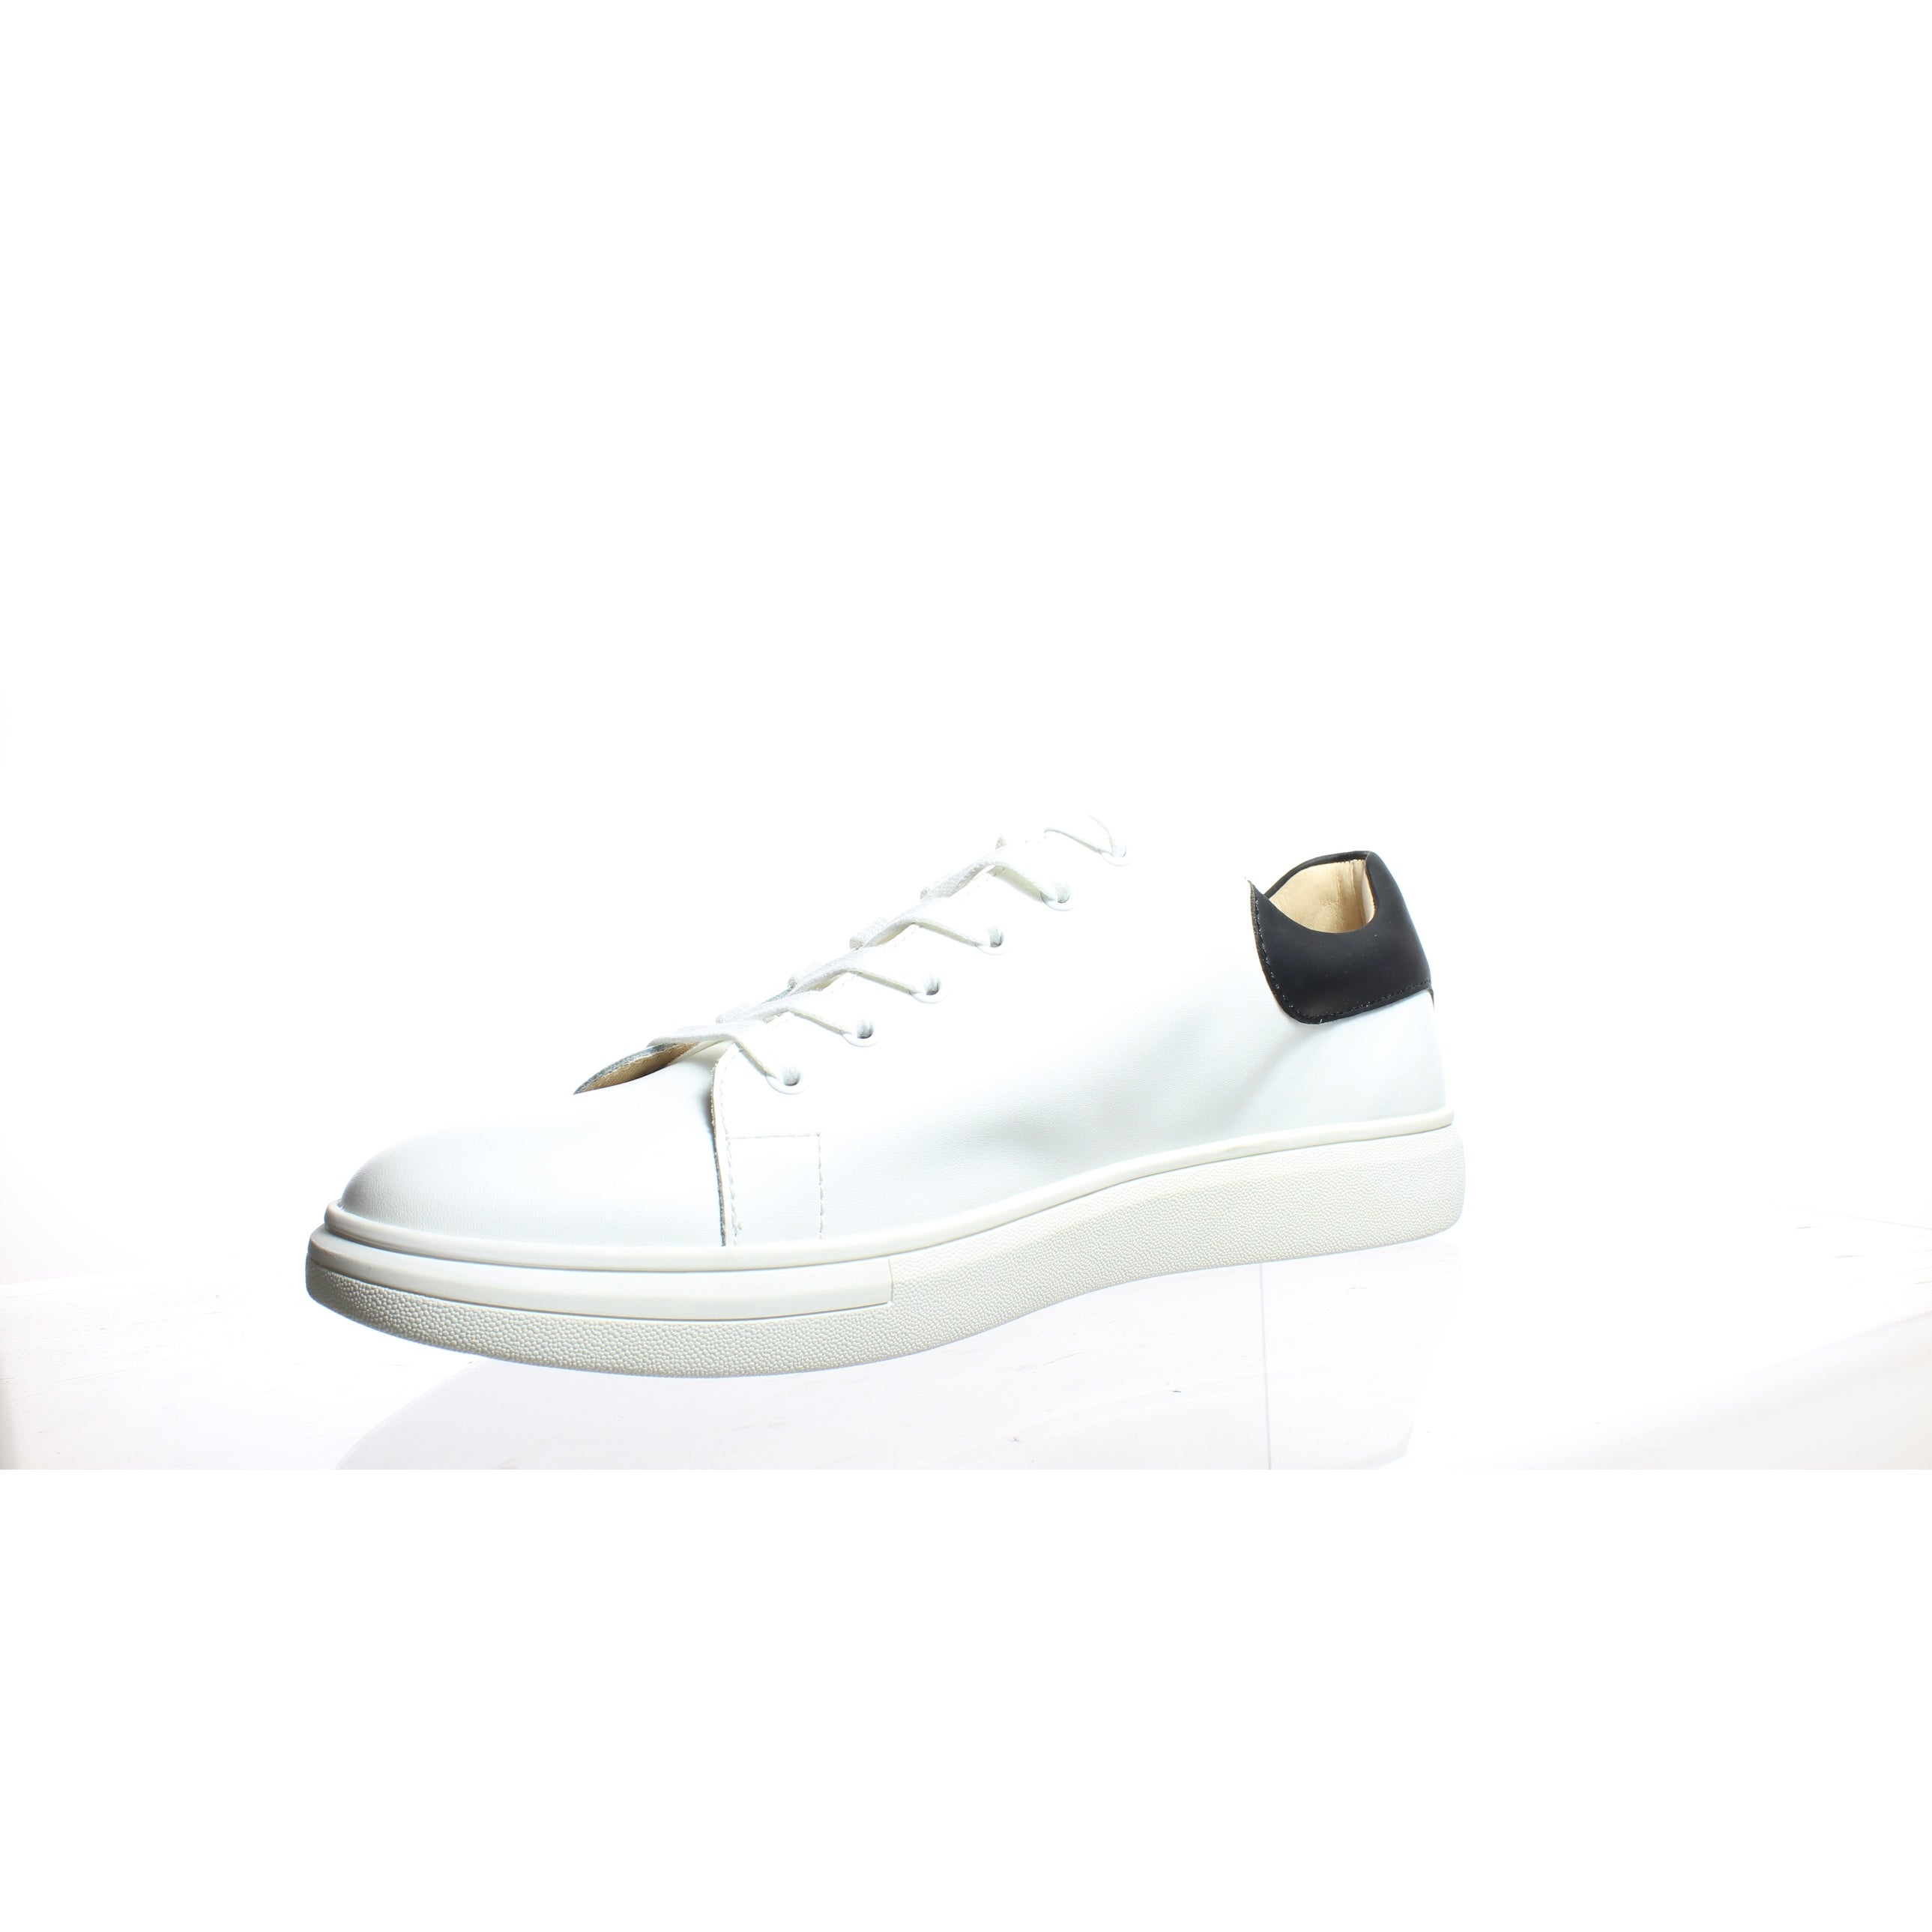 ee24d92caf33 Shop Sam Edelman Mens Jimmy White Fashion Sneaker Size 11.5 - Free Shipping  Today - Overstock - 27414786